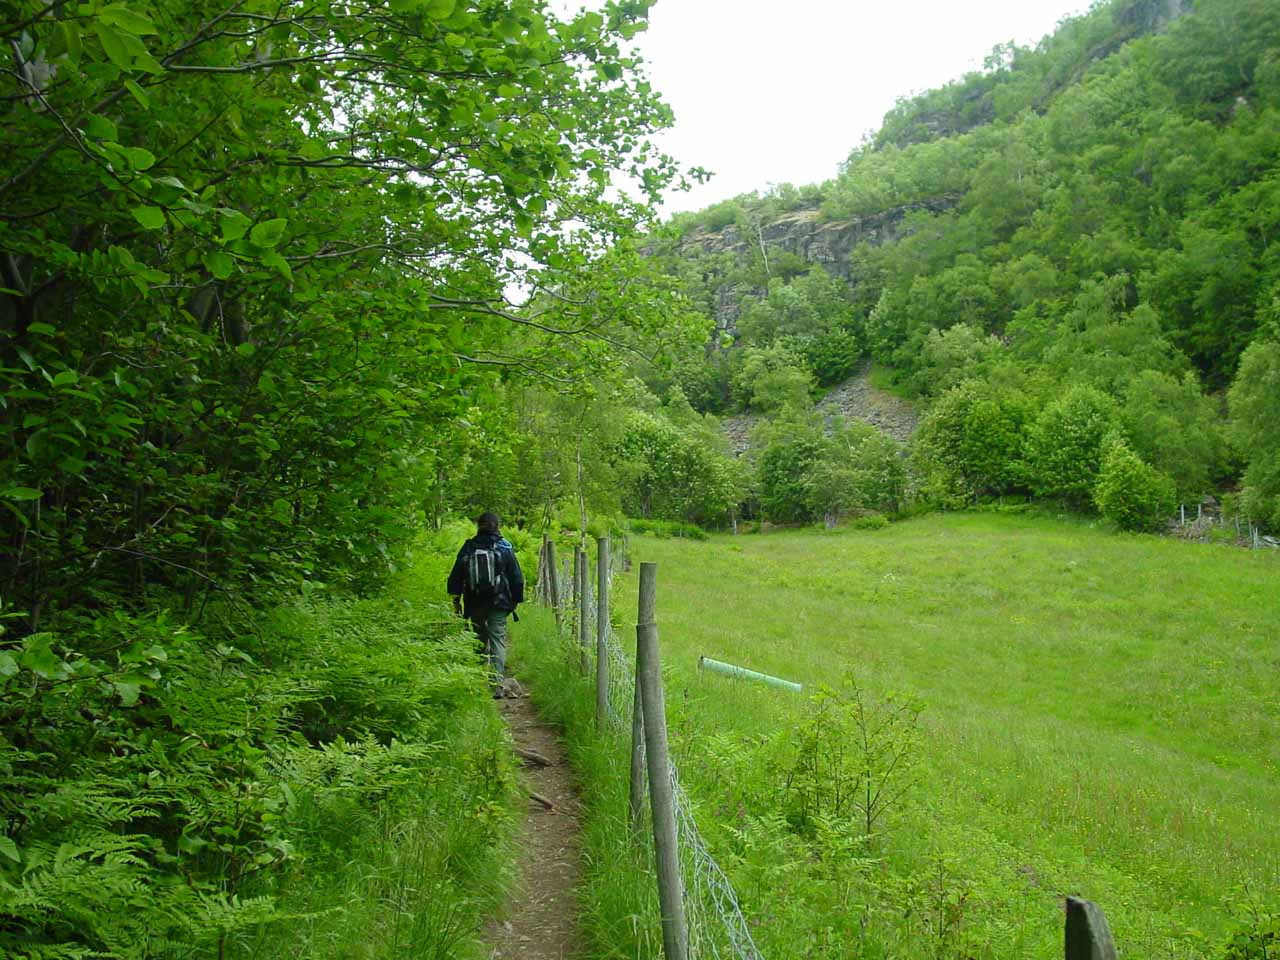 The trail continuing beyond Vetti